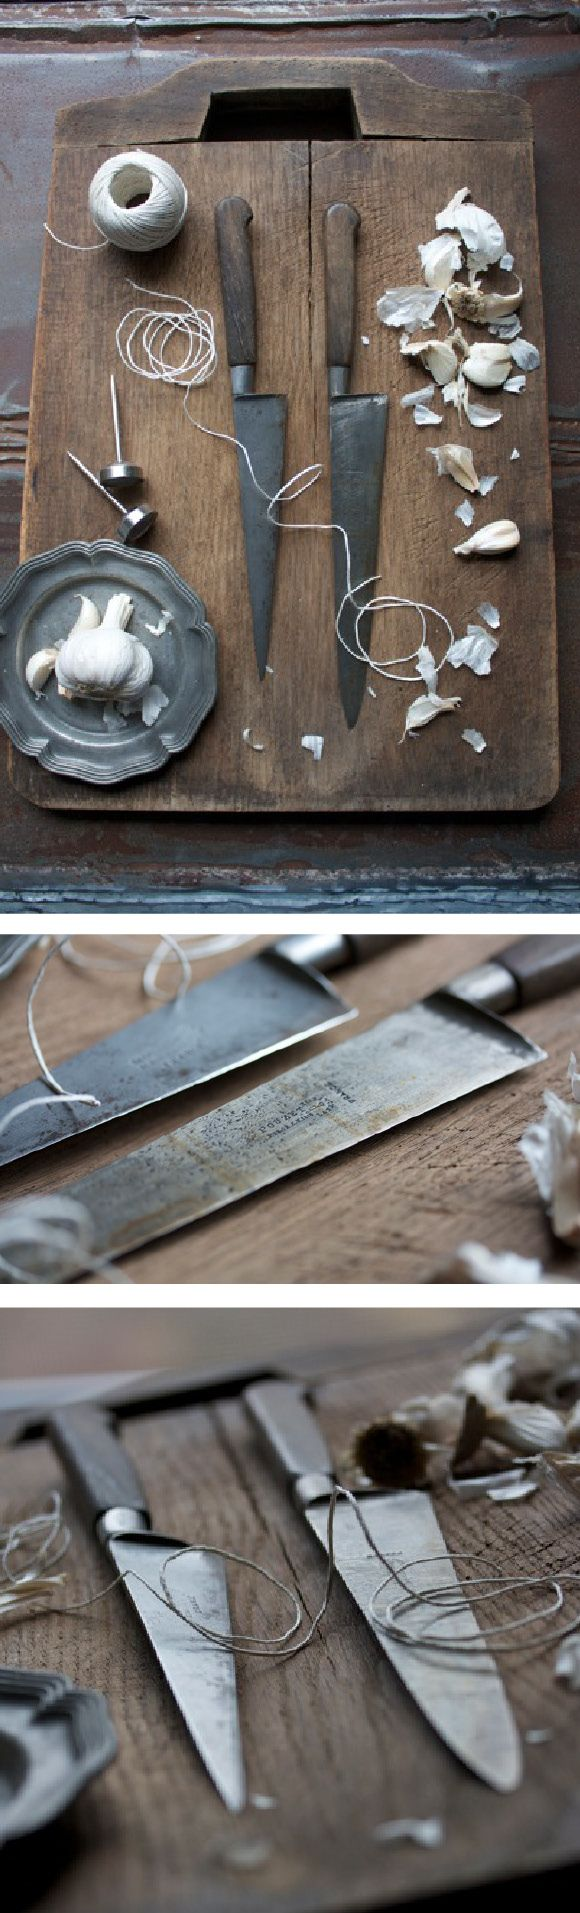 Antique Chefs Knives and Cutting Board